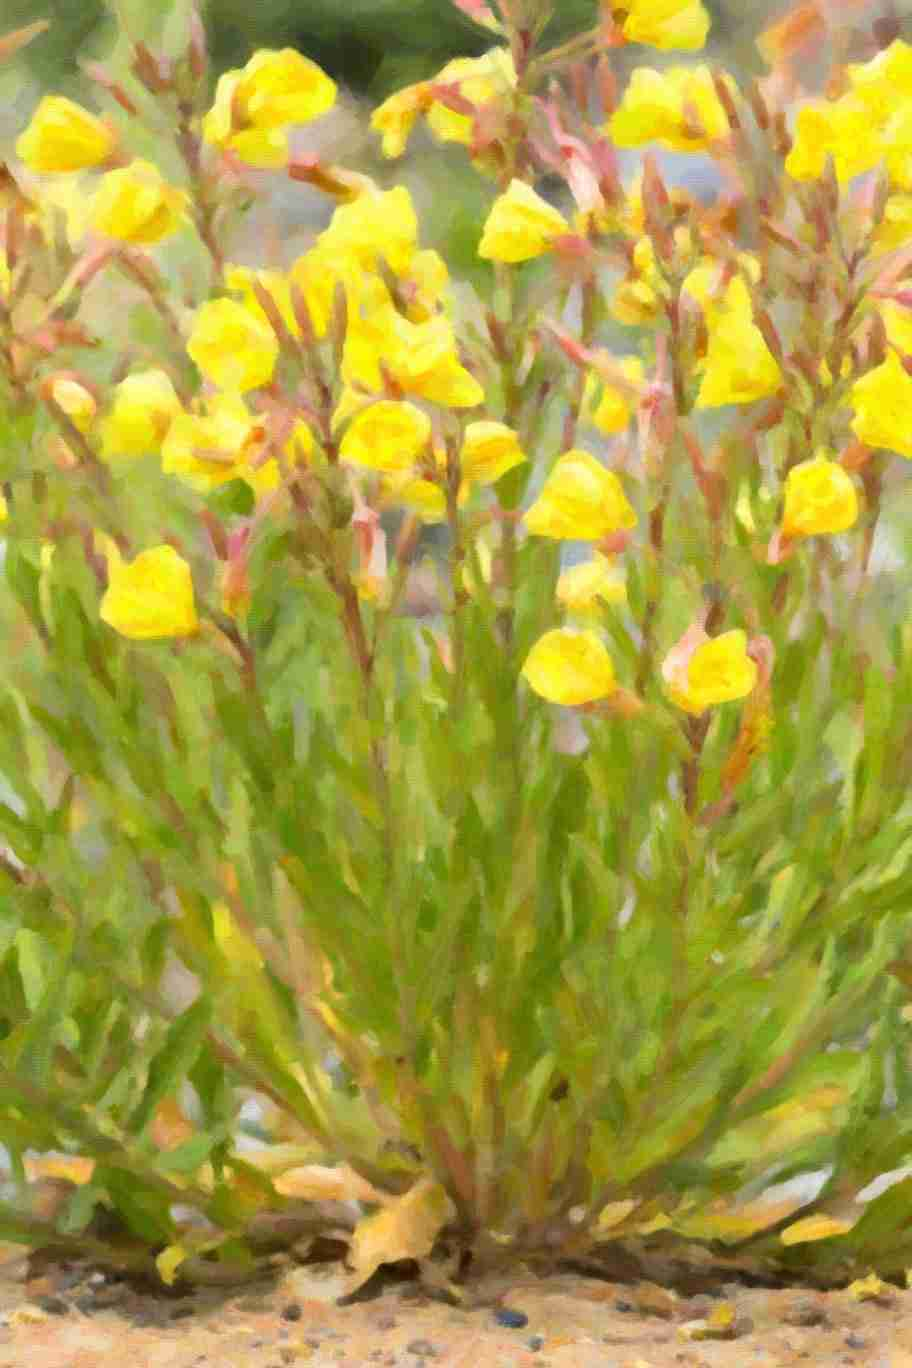 Print of Yellow Wildflowers Growing in the Sand